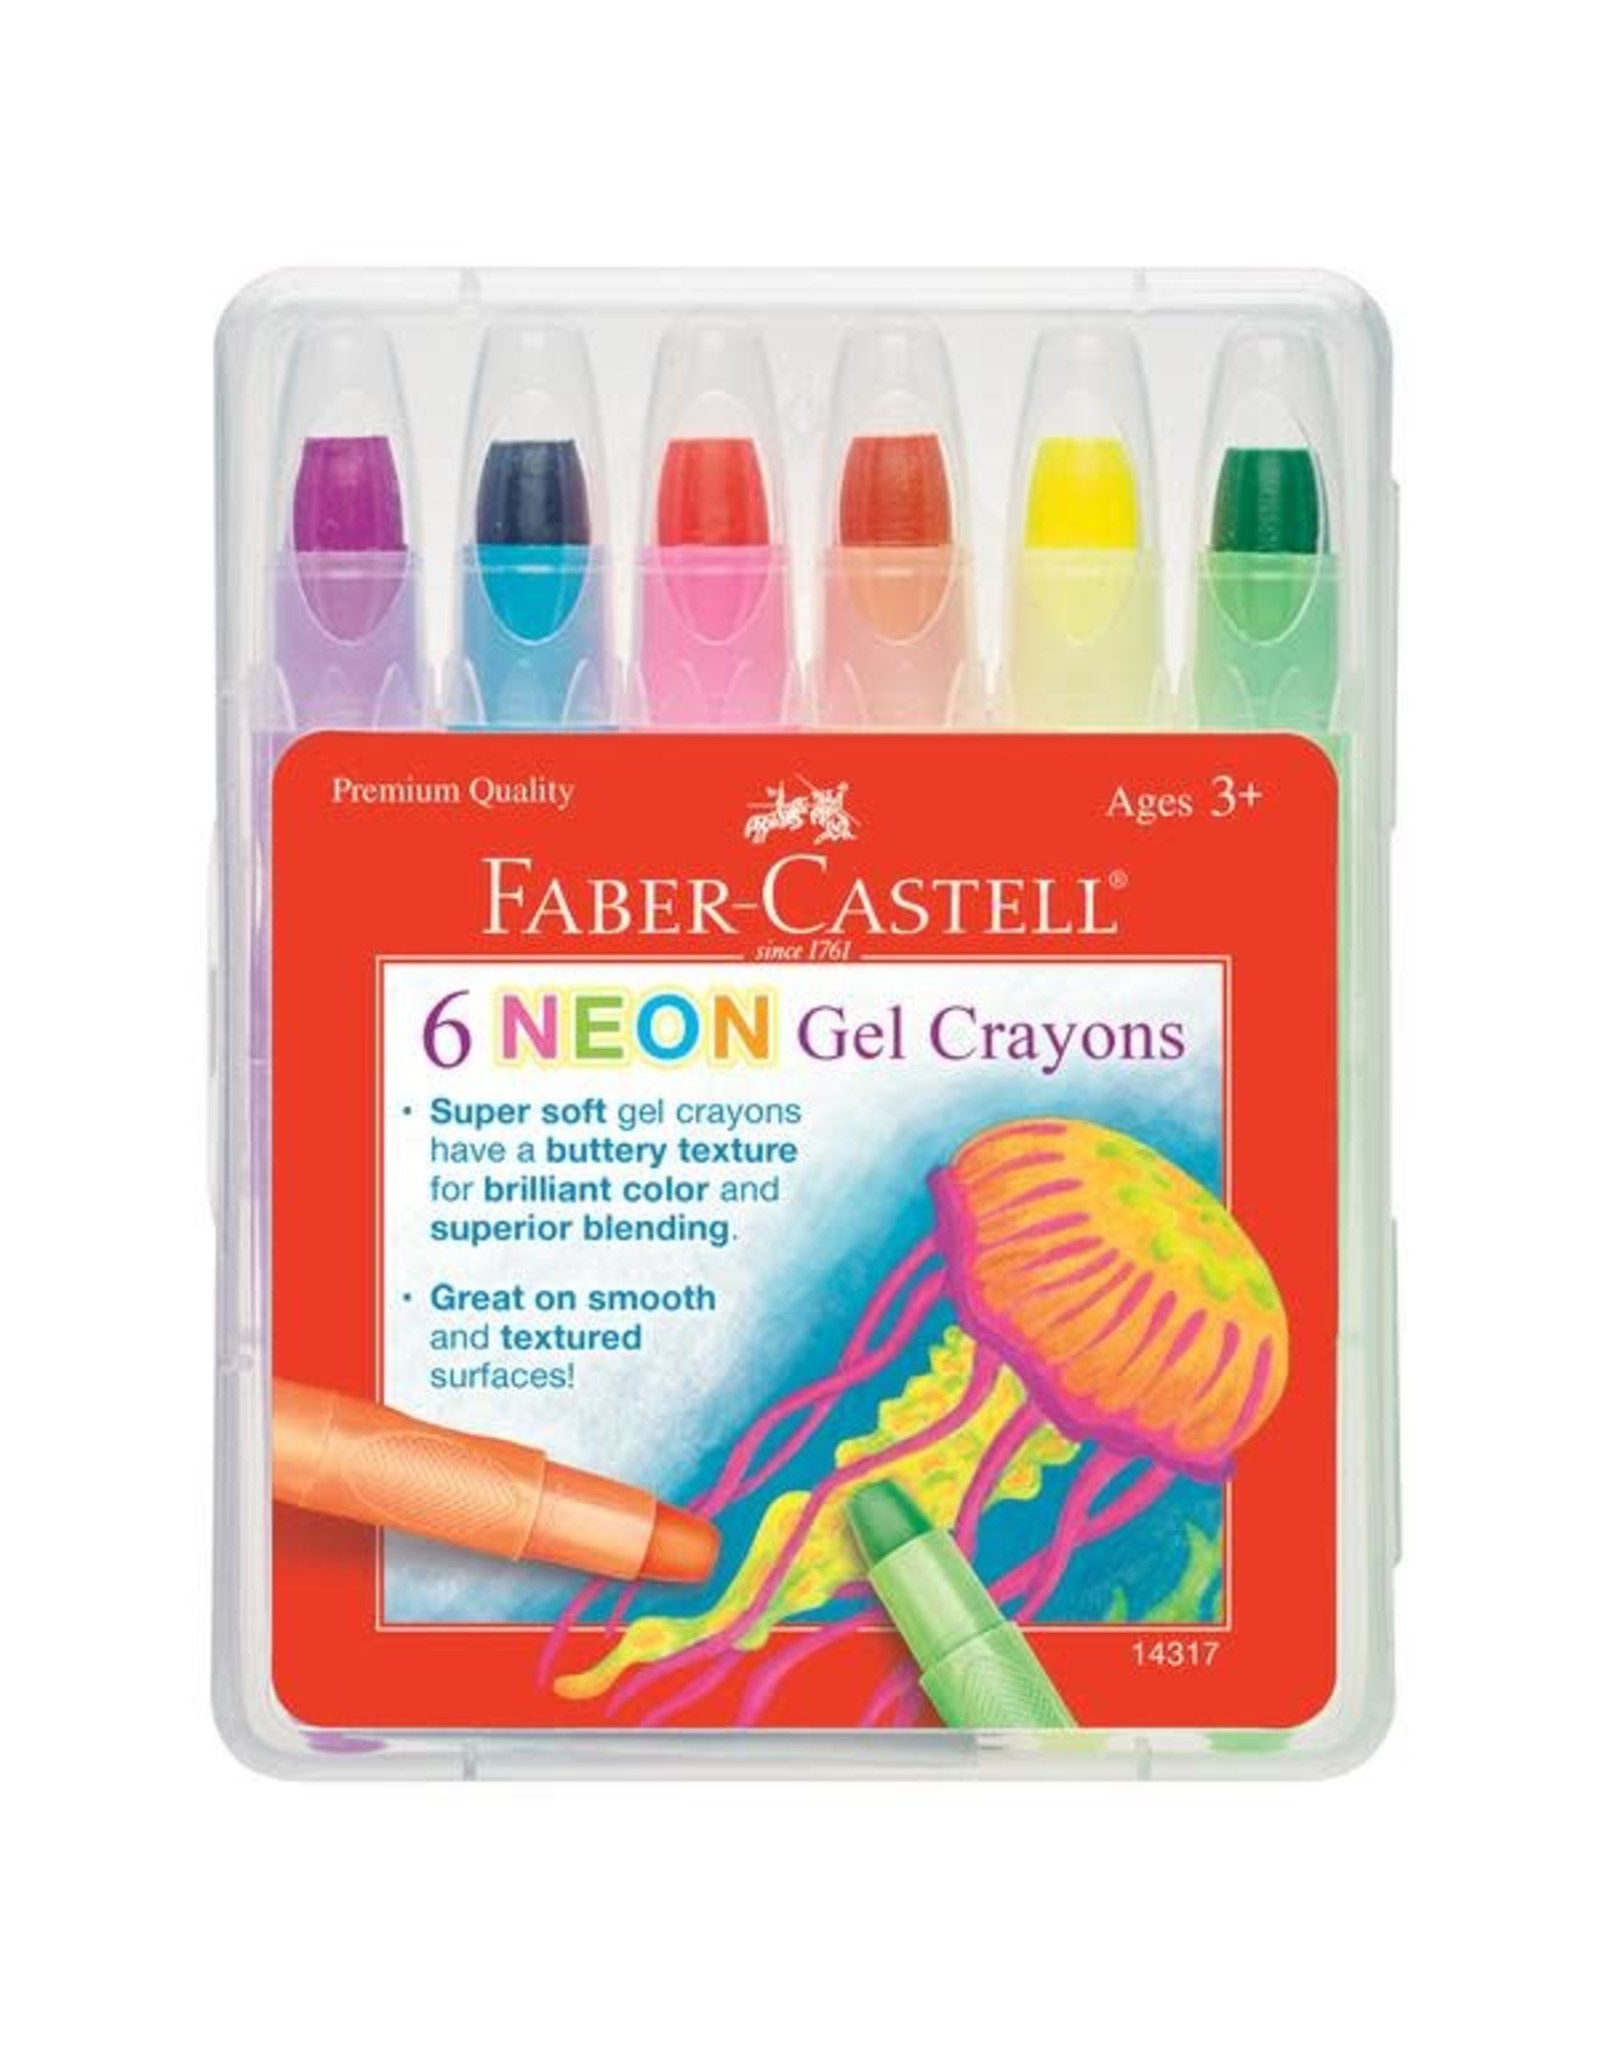 Faber Castell 6ct Neon Gel Crayons